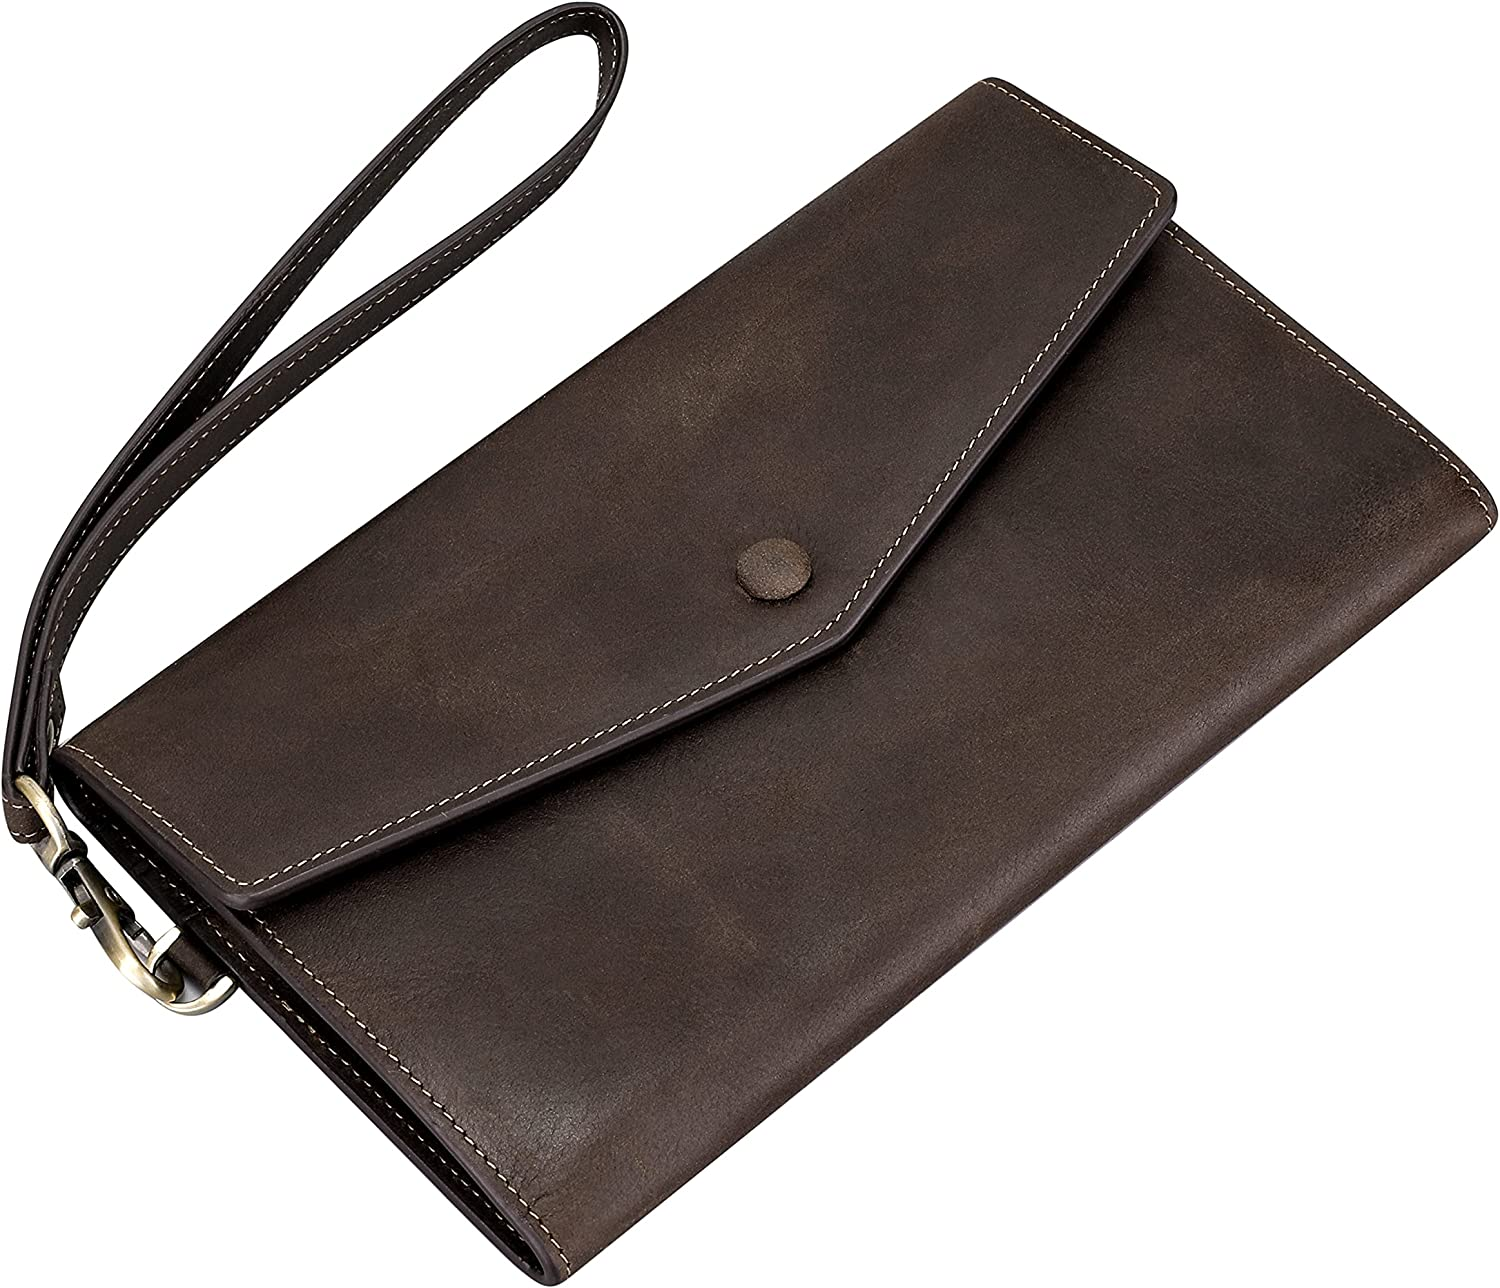 Itslife Wristlet Wallets for Women Leather, RFID Blocking Womens Wallet Large Capacity Phone Purse Gift Wallets (dark brown)